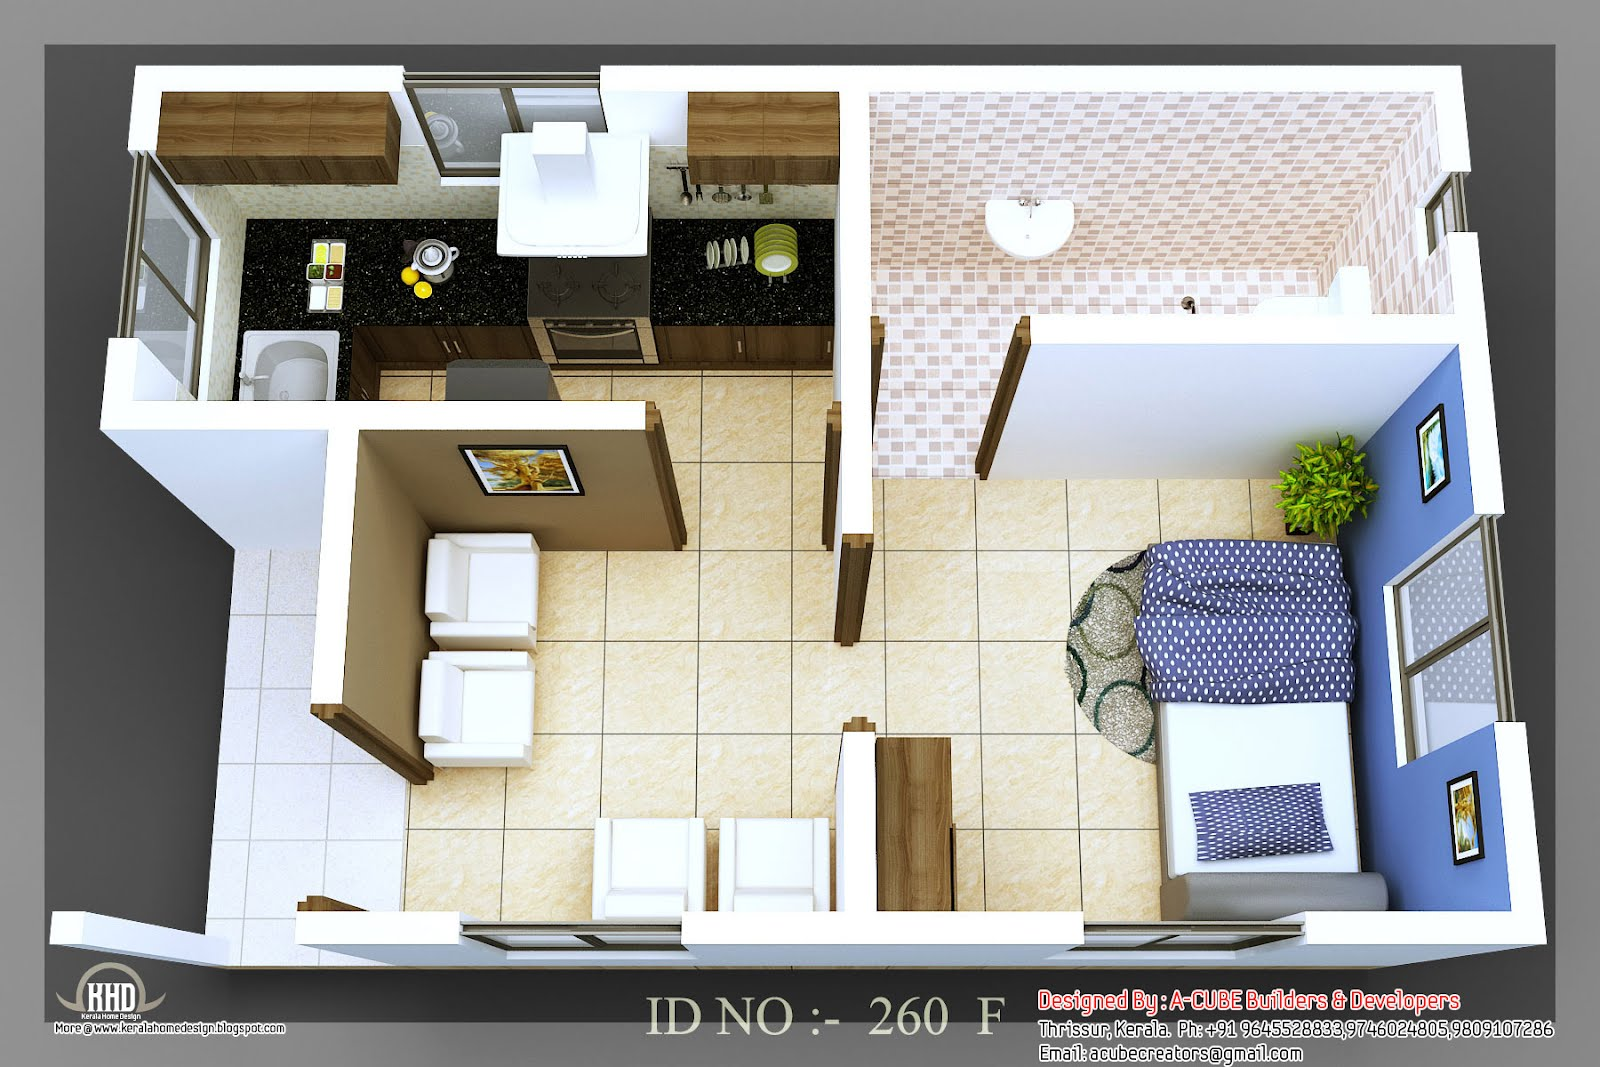 3d isometric views of small house plans home appliance for Very simple small house plans